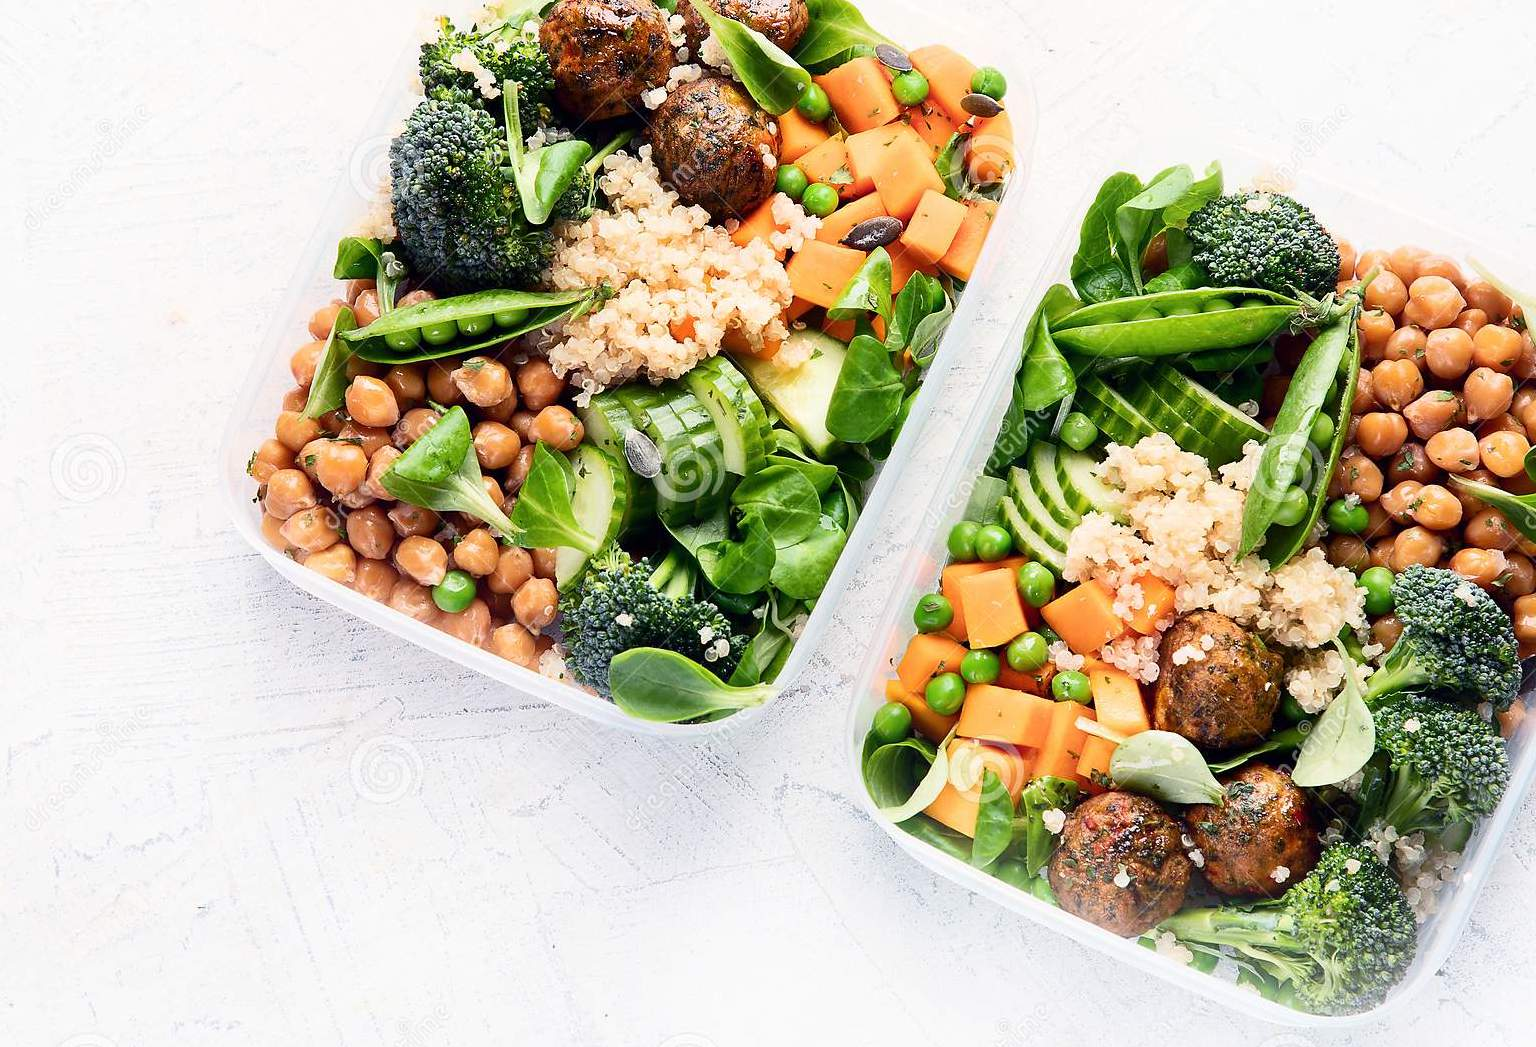 healthy-vegan-lunch-box-clean-diet-eating-concept-foods-high-vitamins-minerals-plant-protein-antioxidants-fiber-top-view-153006465